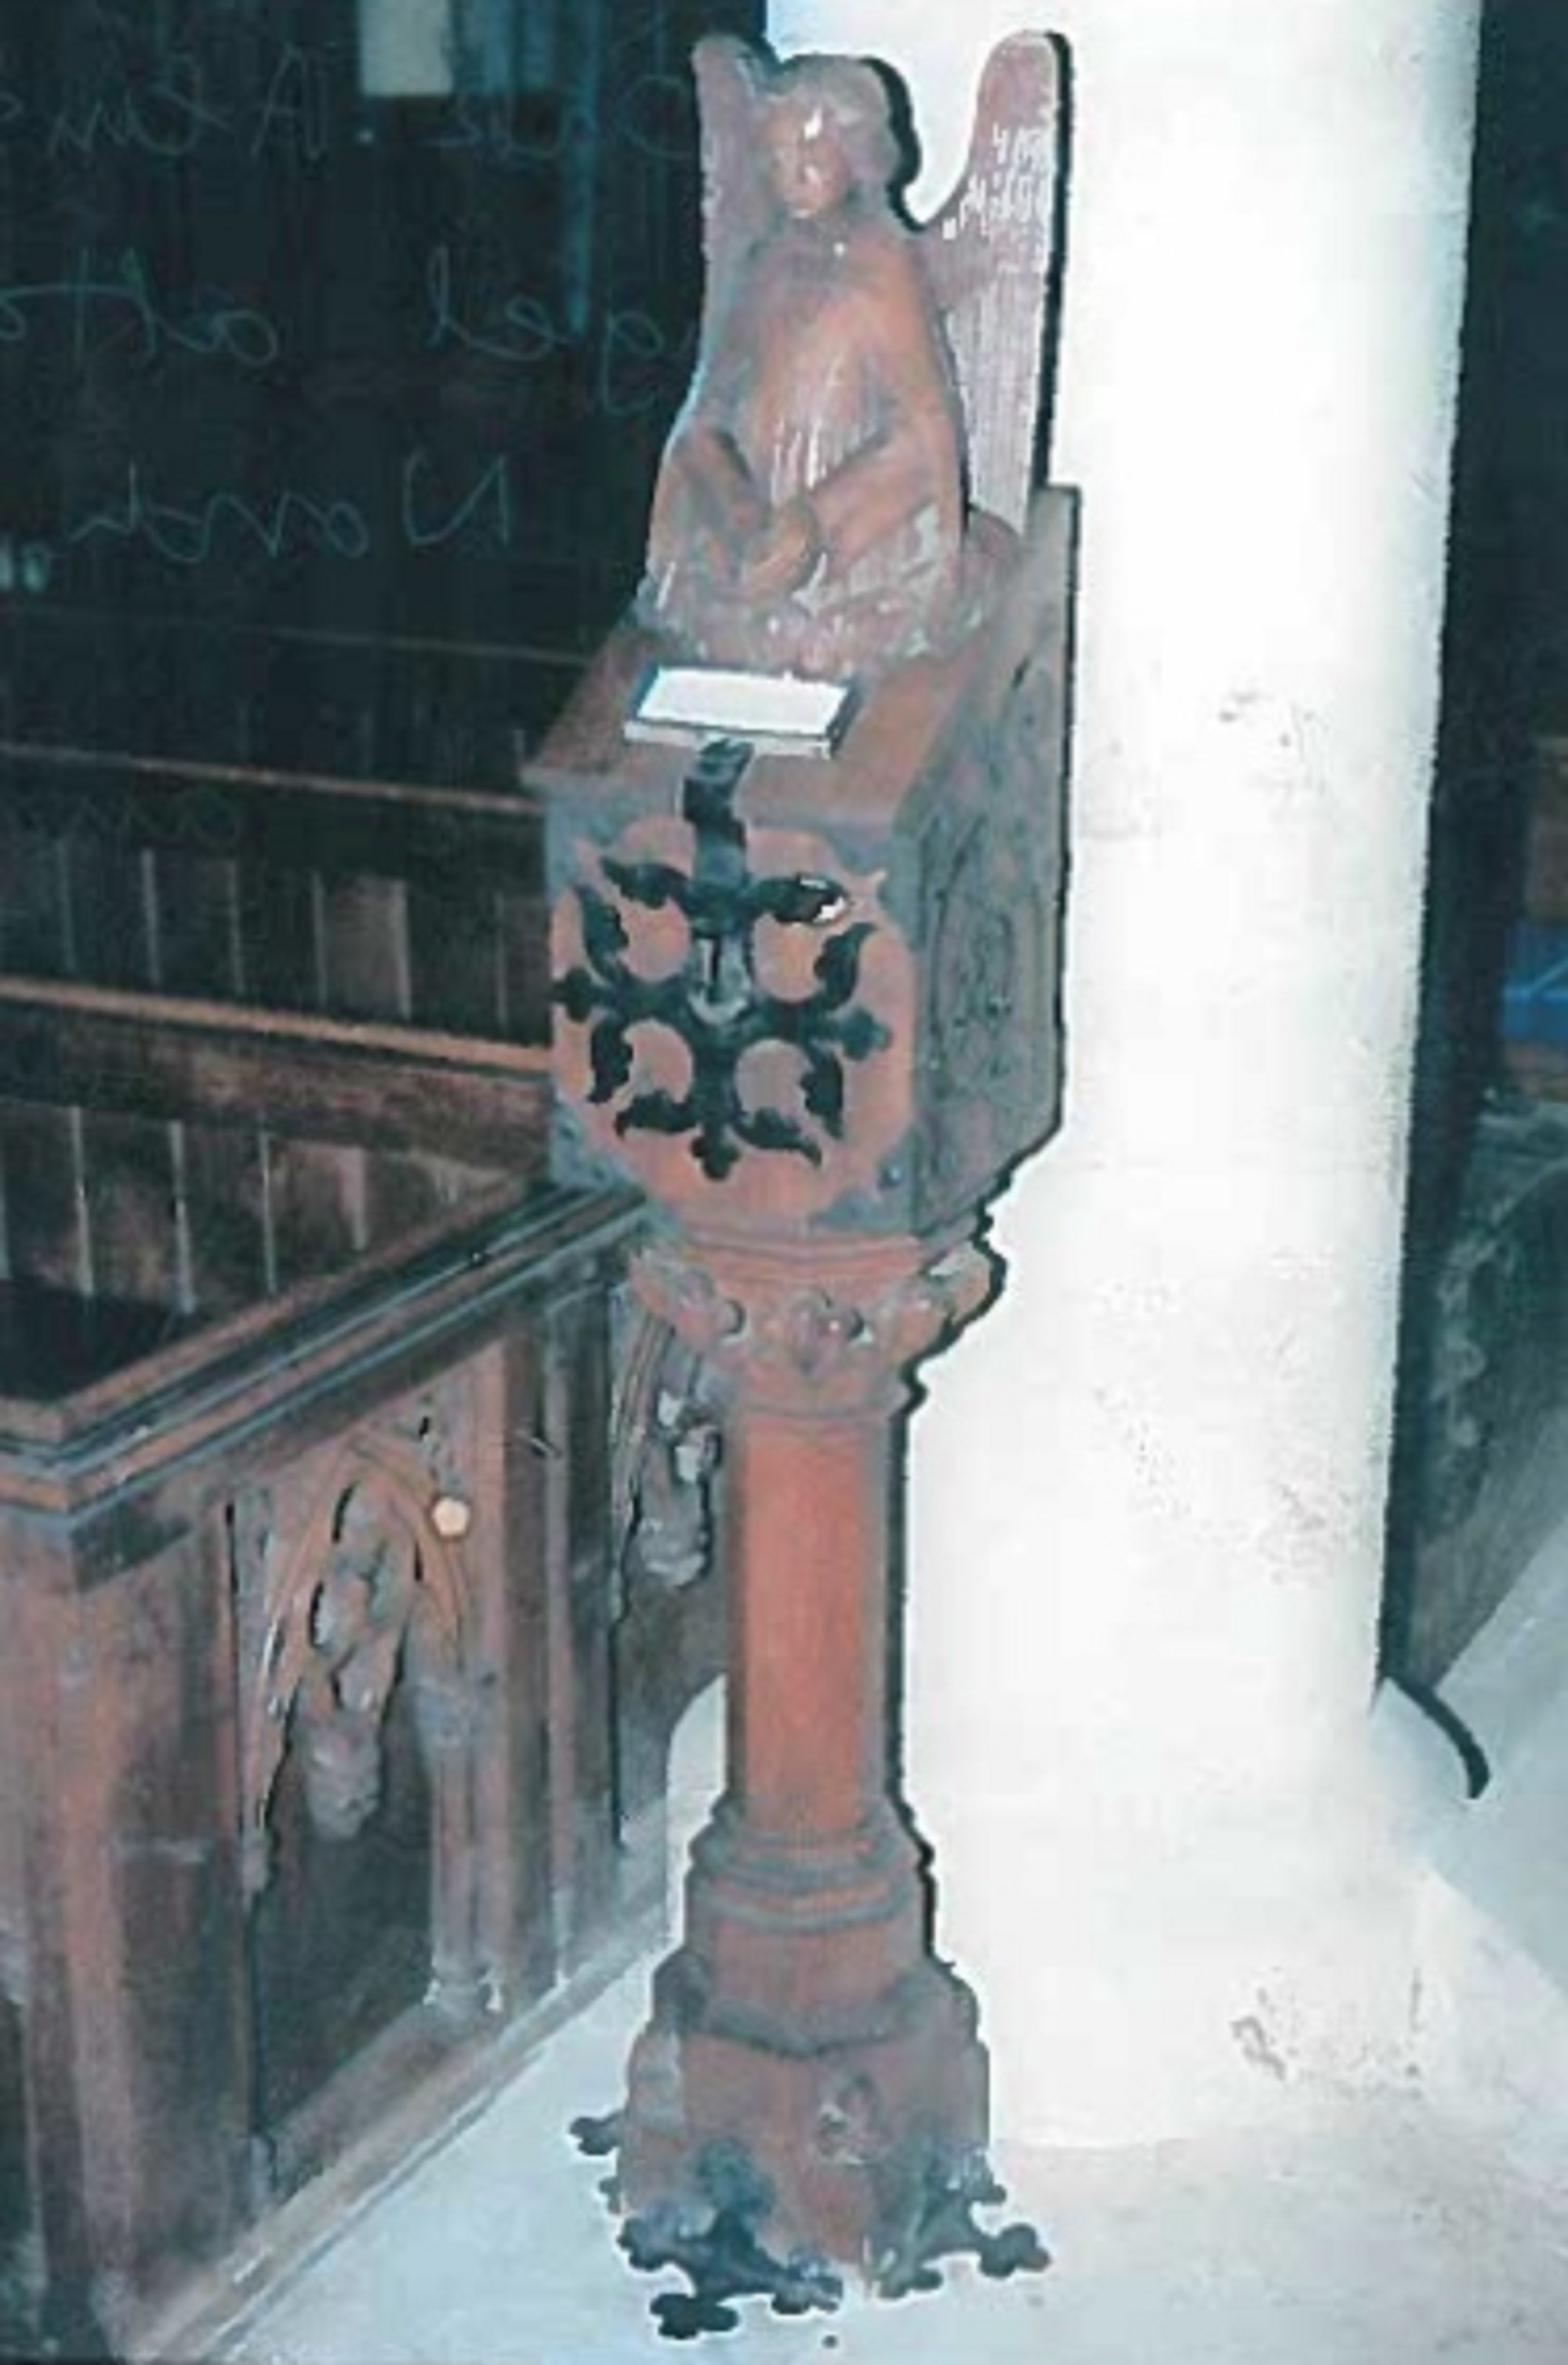 This wooden statue of an angel was stolen from St Bartholomew's Church in Wickham Bishops recently